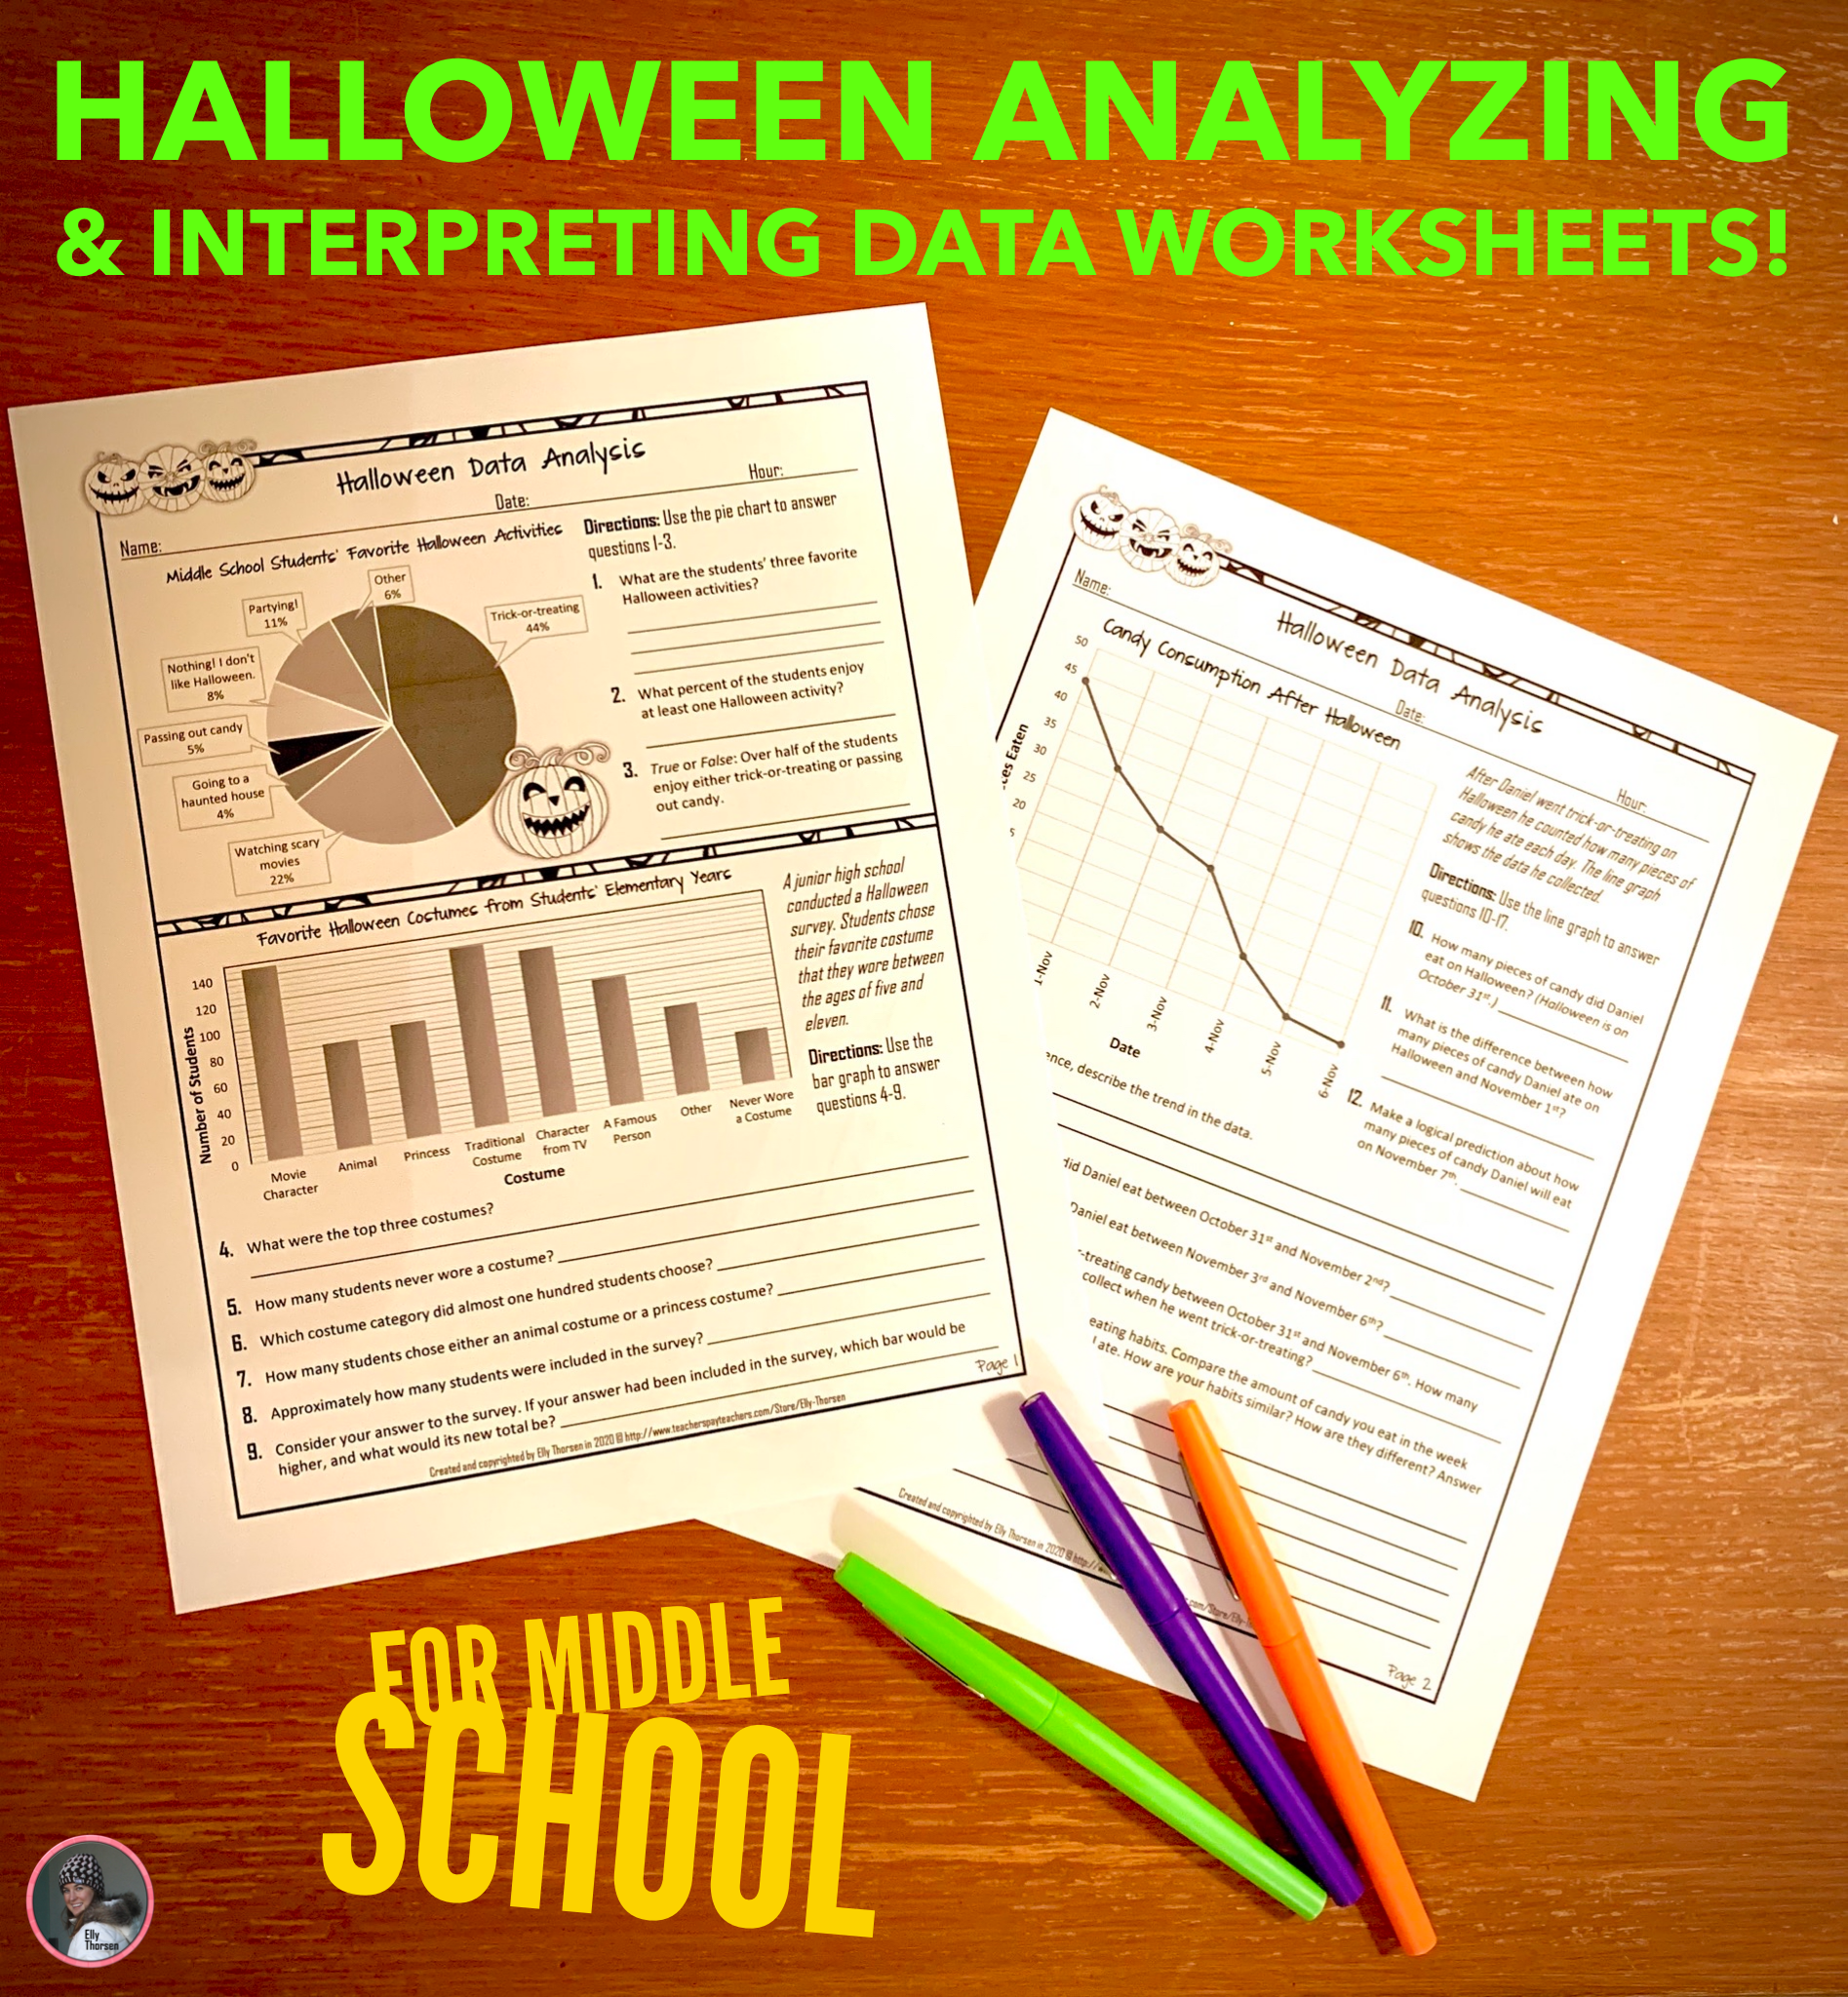 Halloweenyzing And Interpreting Data Worksheets In